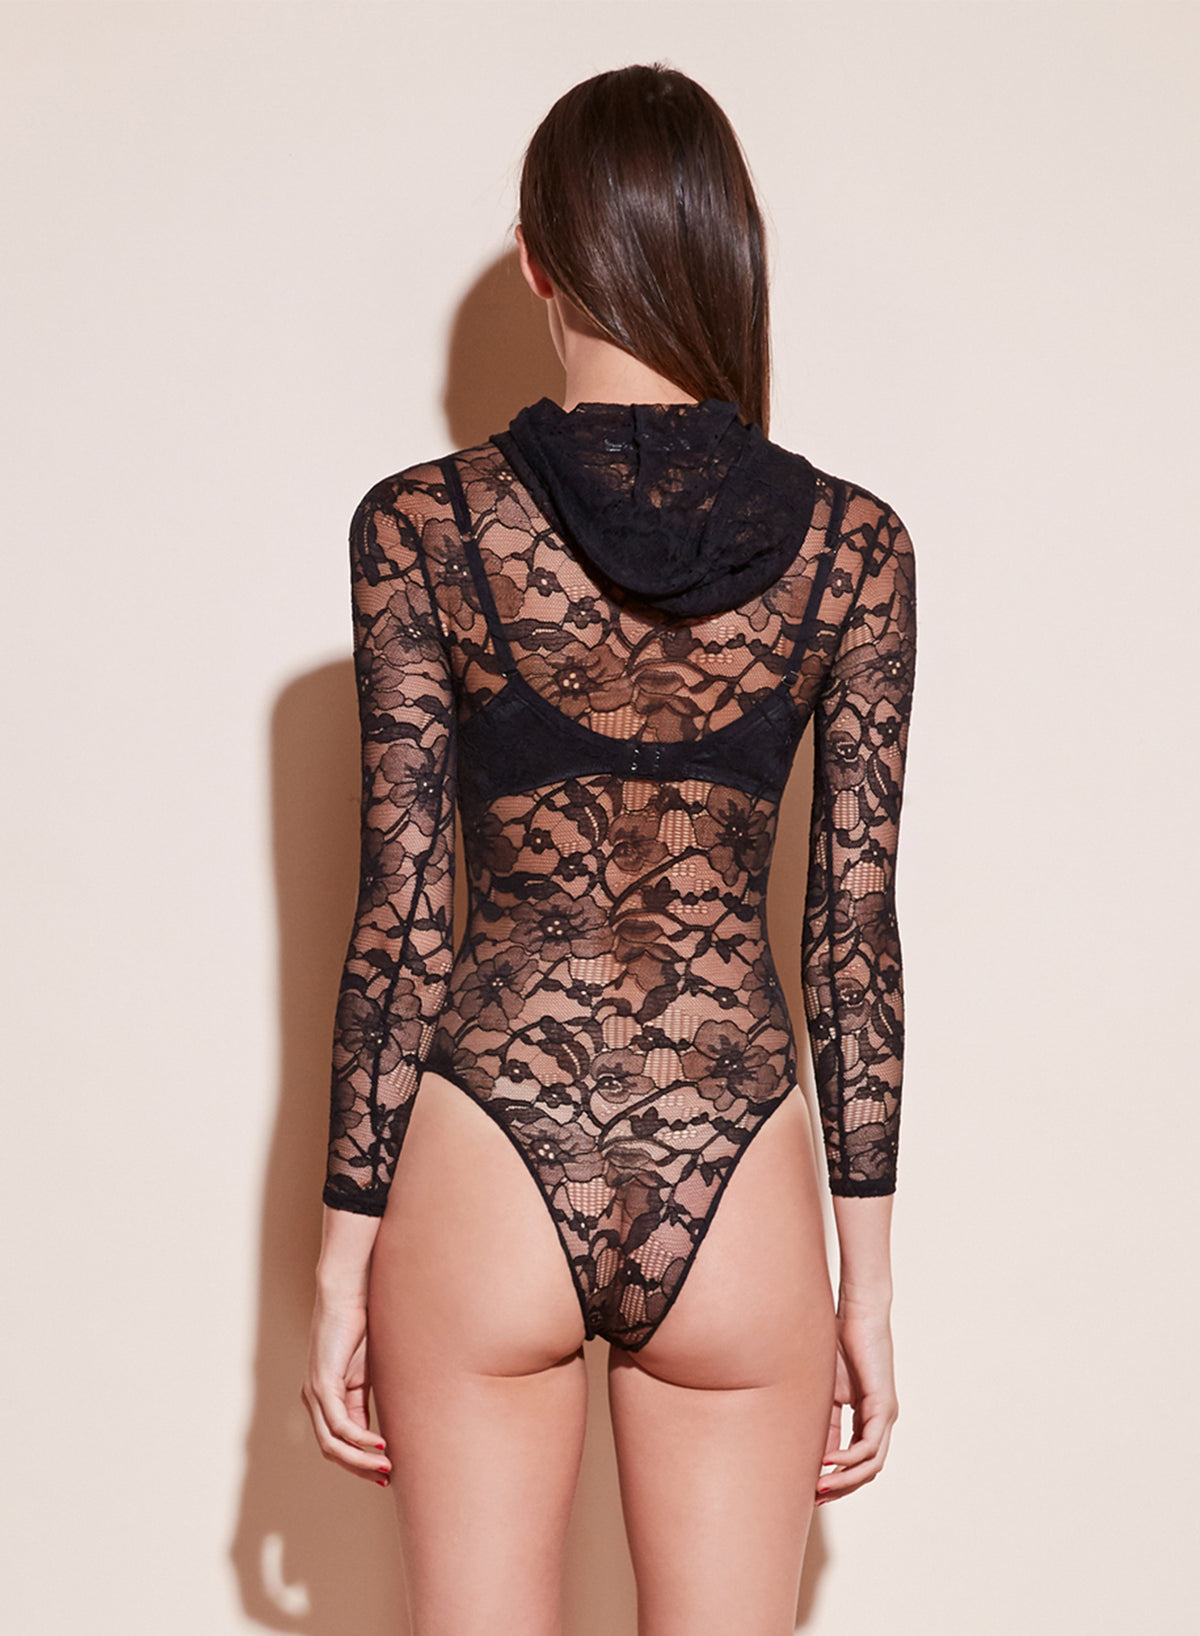 Magnolia Lace Hooded Bodysuit